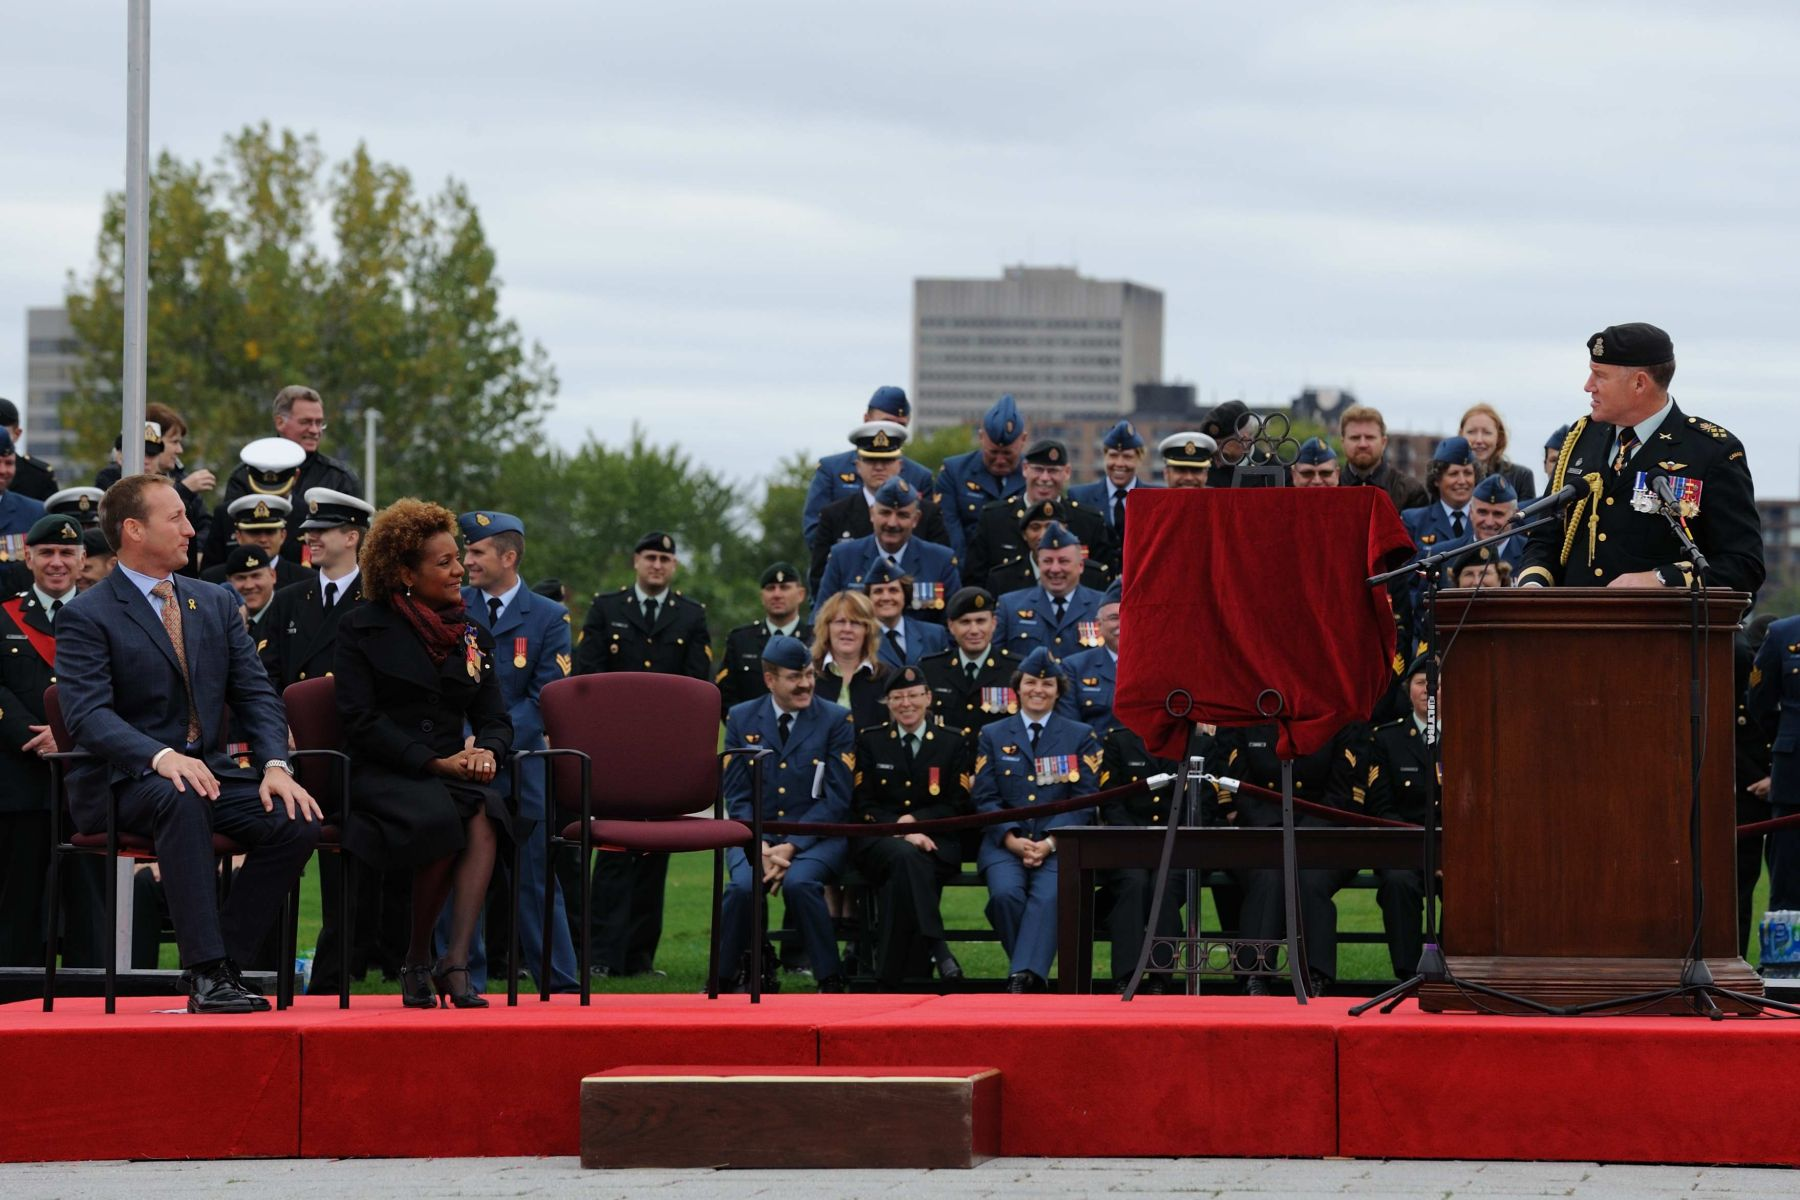 """As our Commander-in-Chief, Her Excellency has visited thousands of Canadian Forces members across Canada and around the world,"" said the Chief of the Defence Staff, General Walter Natynczyk.  ""This farewell ceremony is a reflection of the unique and positive relationship that Her Excellency has maintained with the Canadian Forces since her appointment five years ago."""